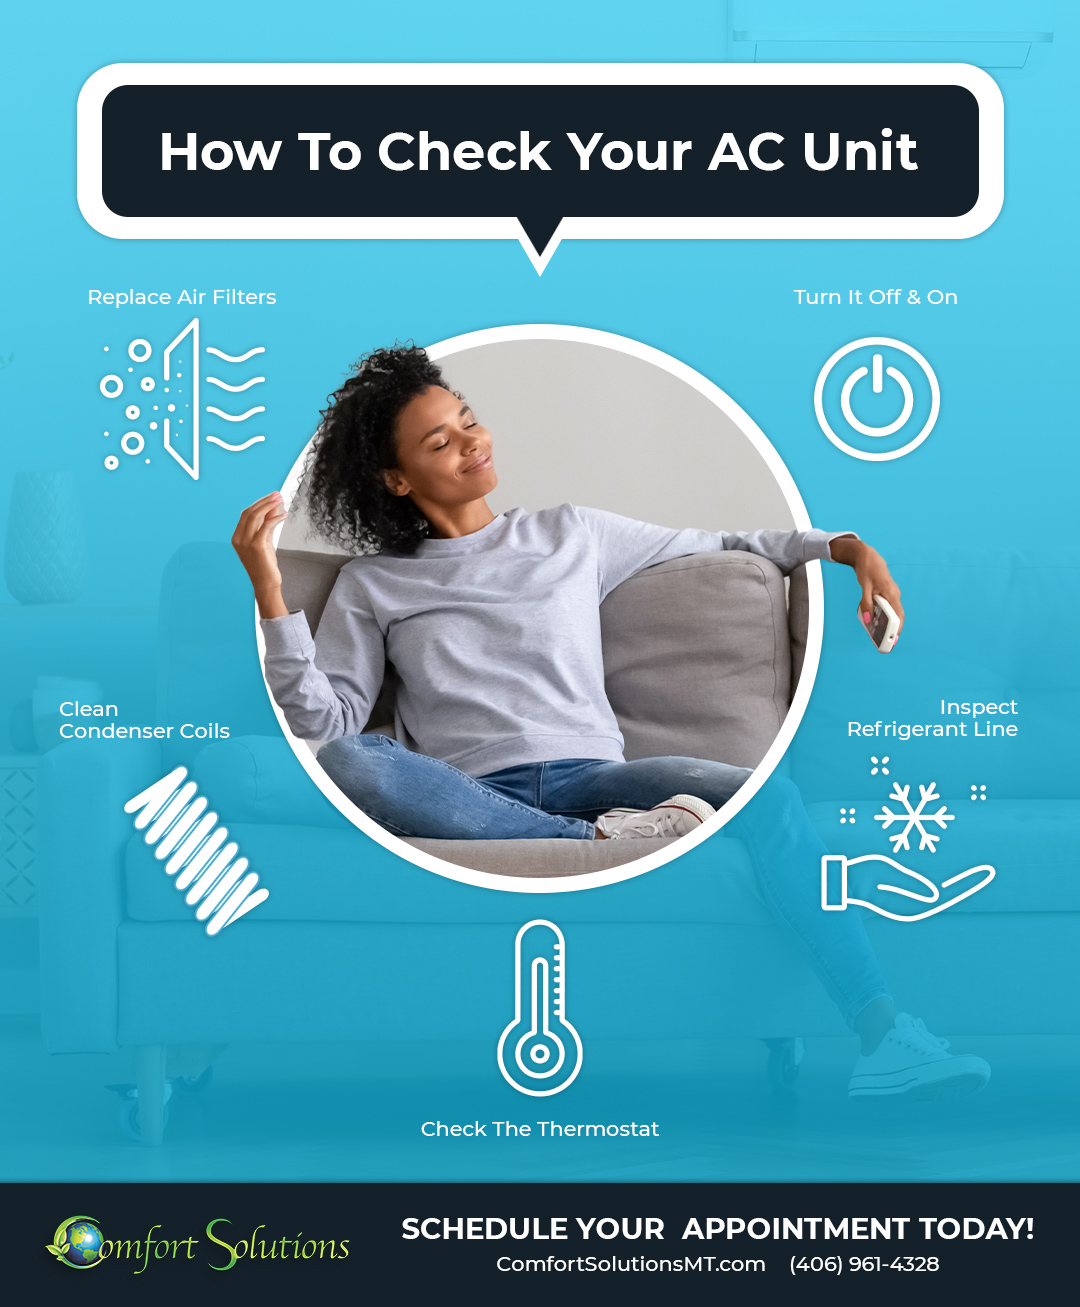 How To Check Your AC Unit infographic